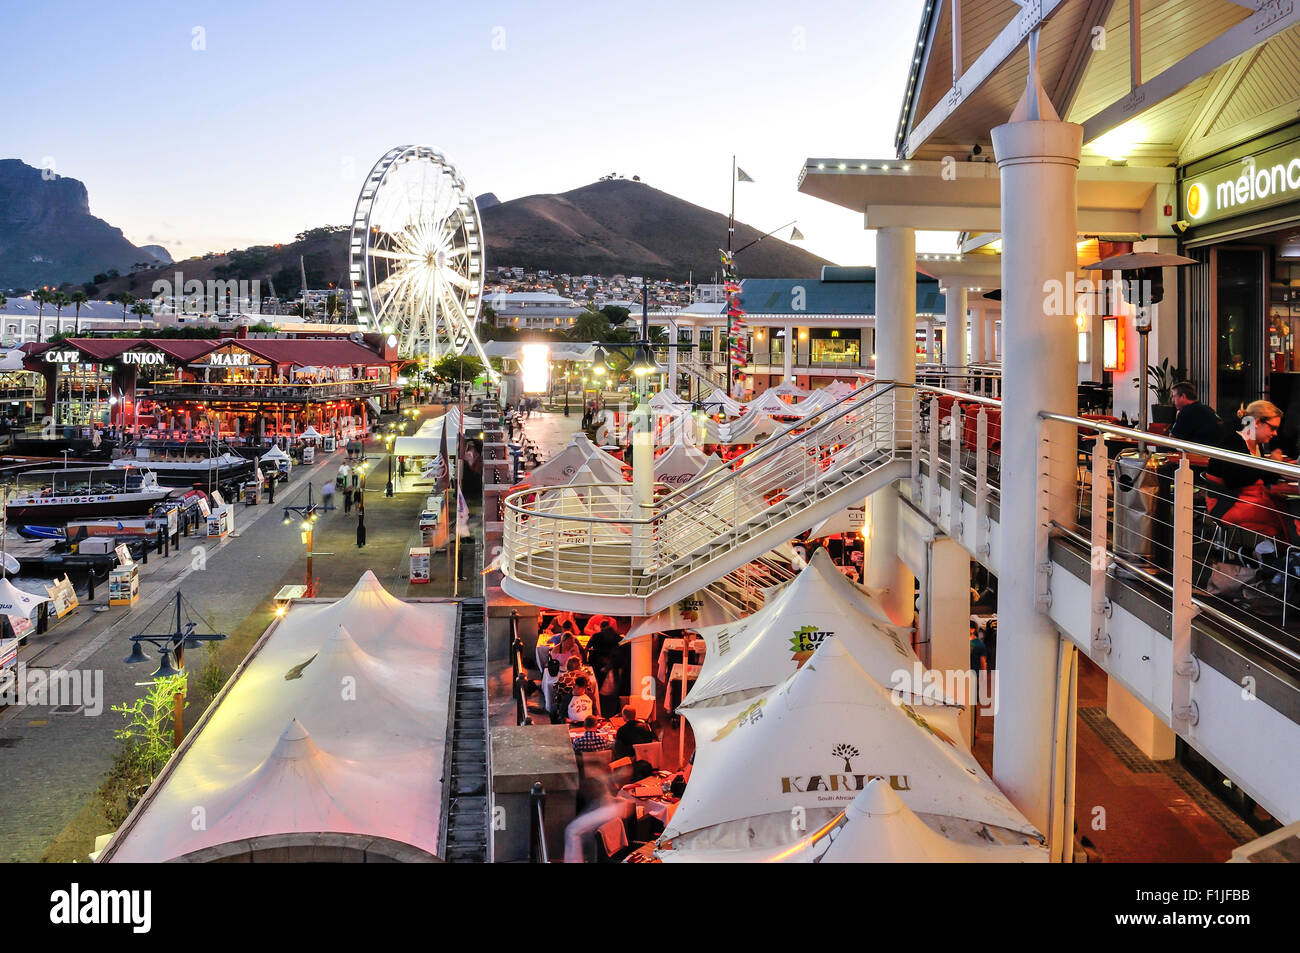 Victoria & Albert Waterfront at dusk, Cape Town, Western Cape Province, Republic of South Africa - Stock Image